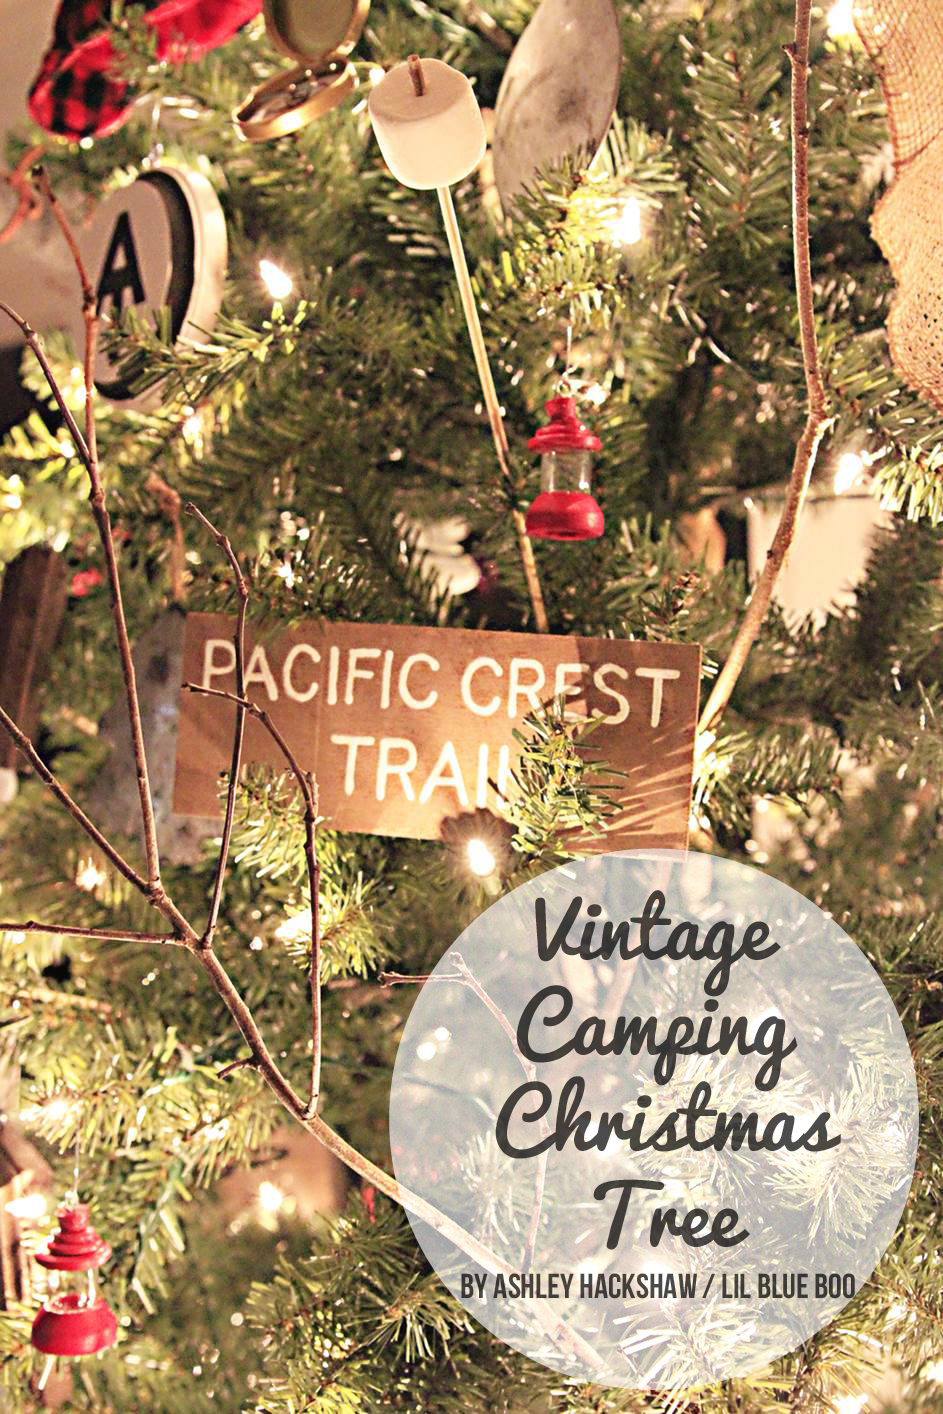 Camping christmas tree ornaments - Vintage Camping Theme Tree Michaels Makers Dream Tree Challenge 2015